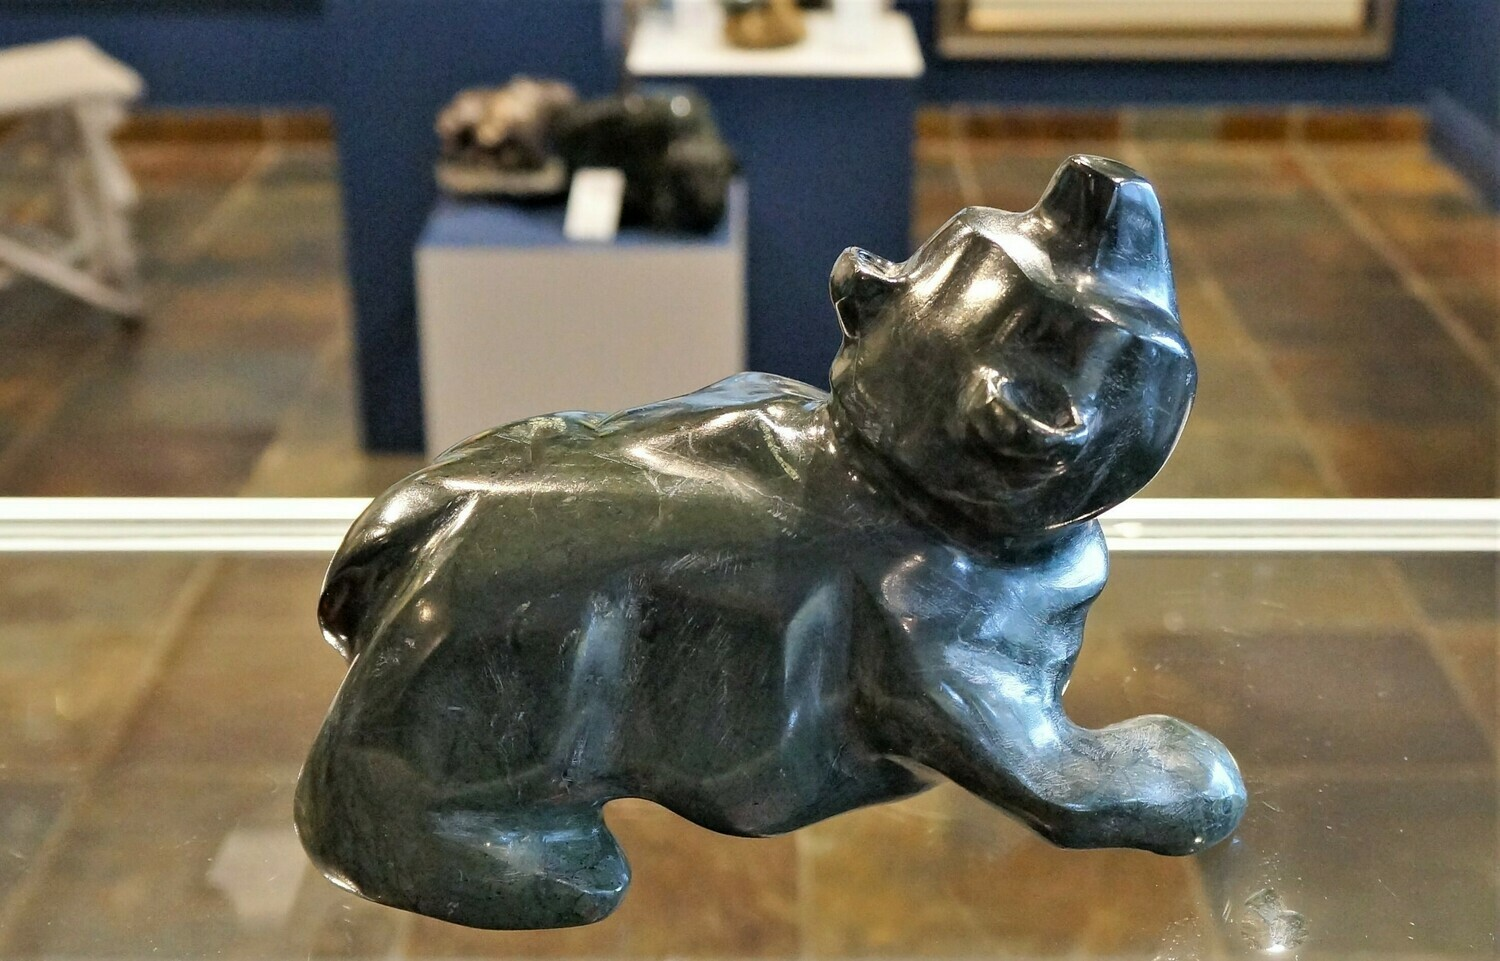 Whimsical Bear, by Paul McCarl